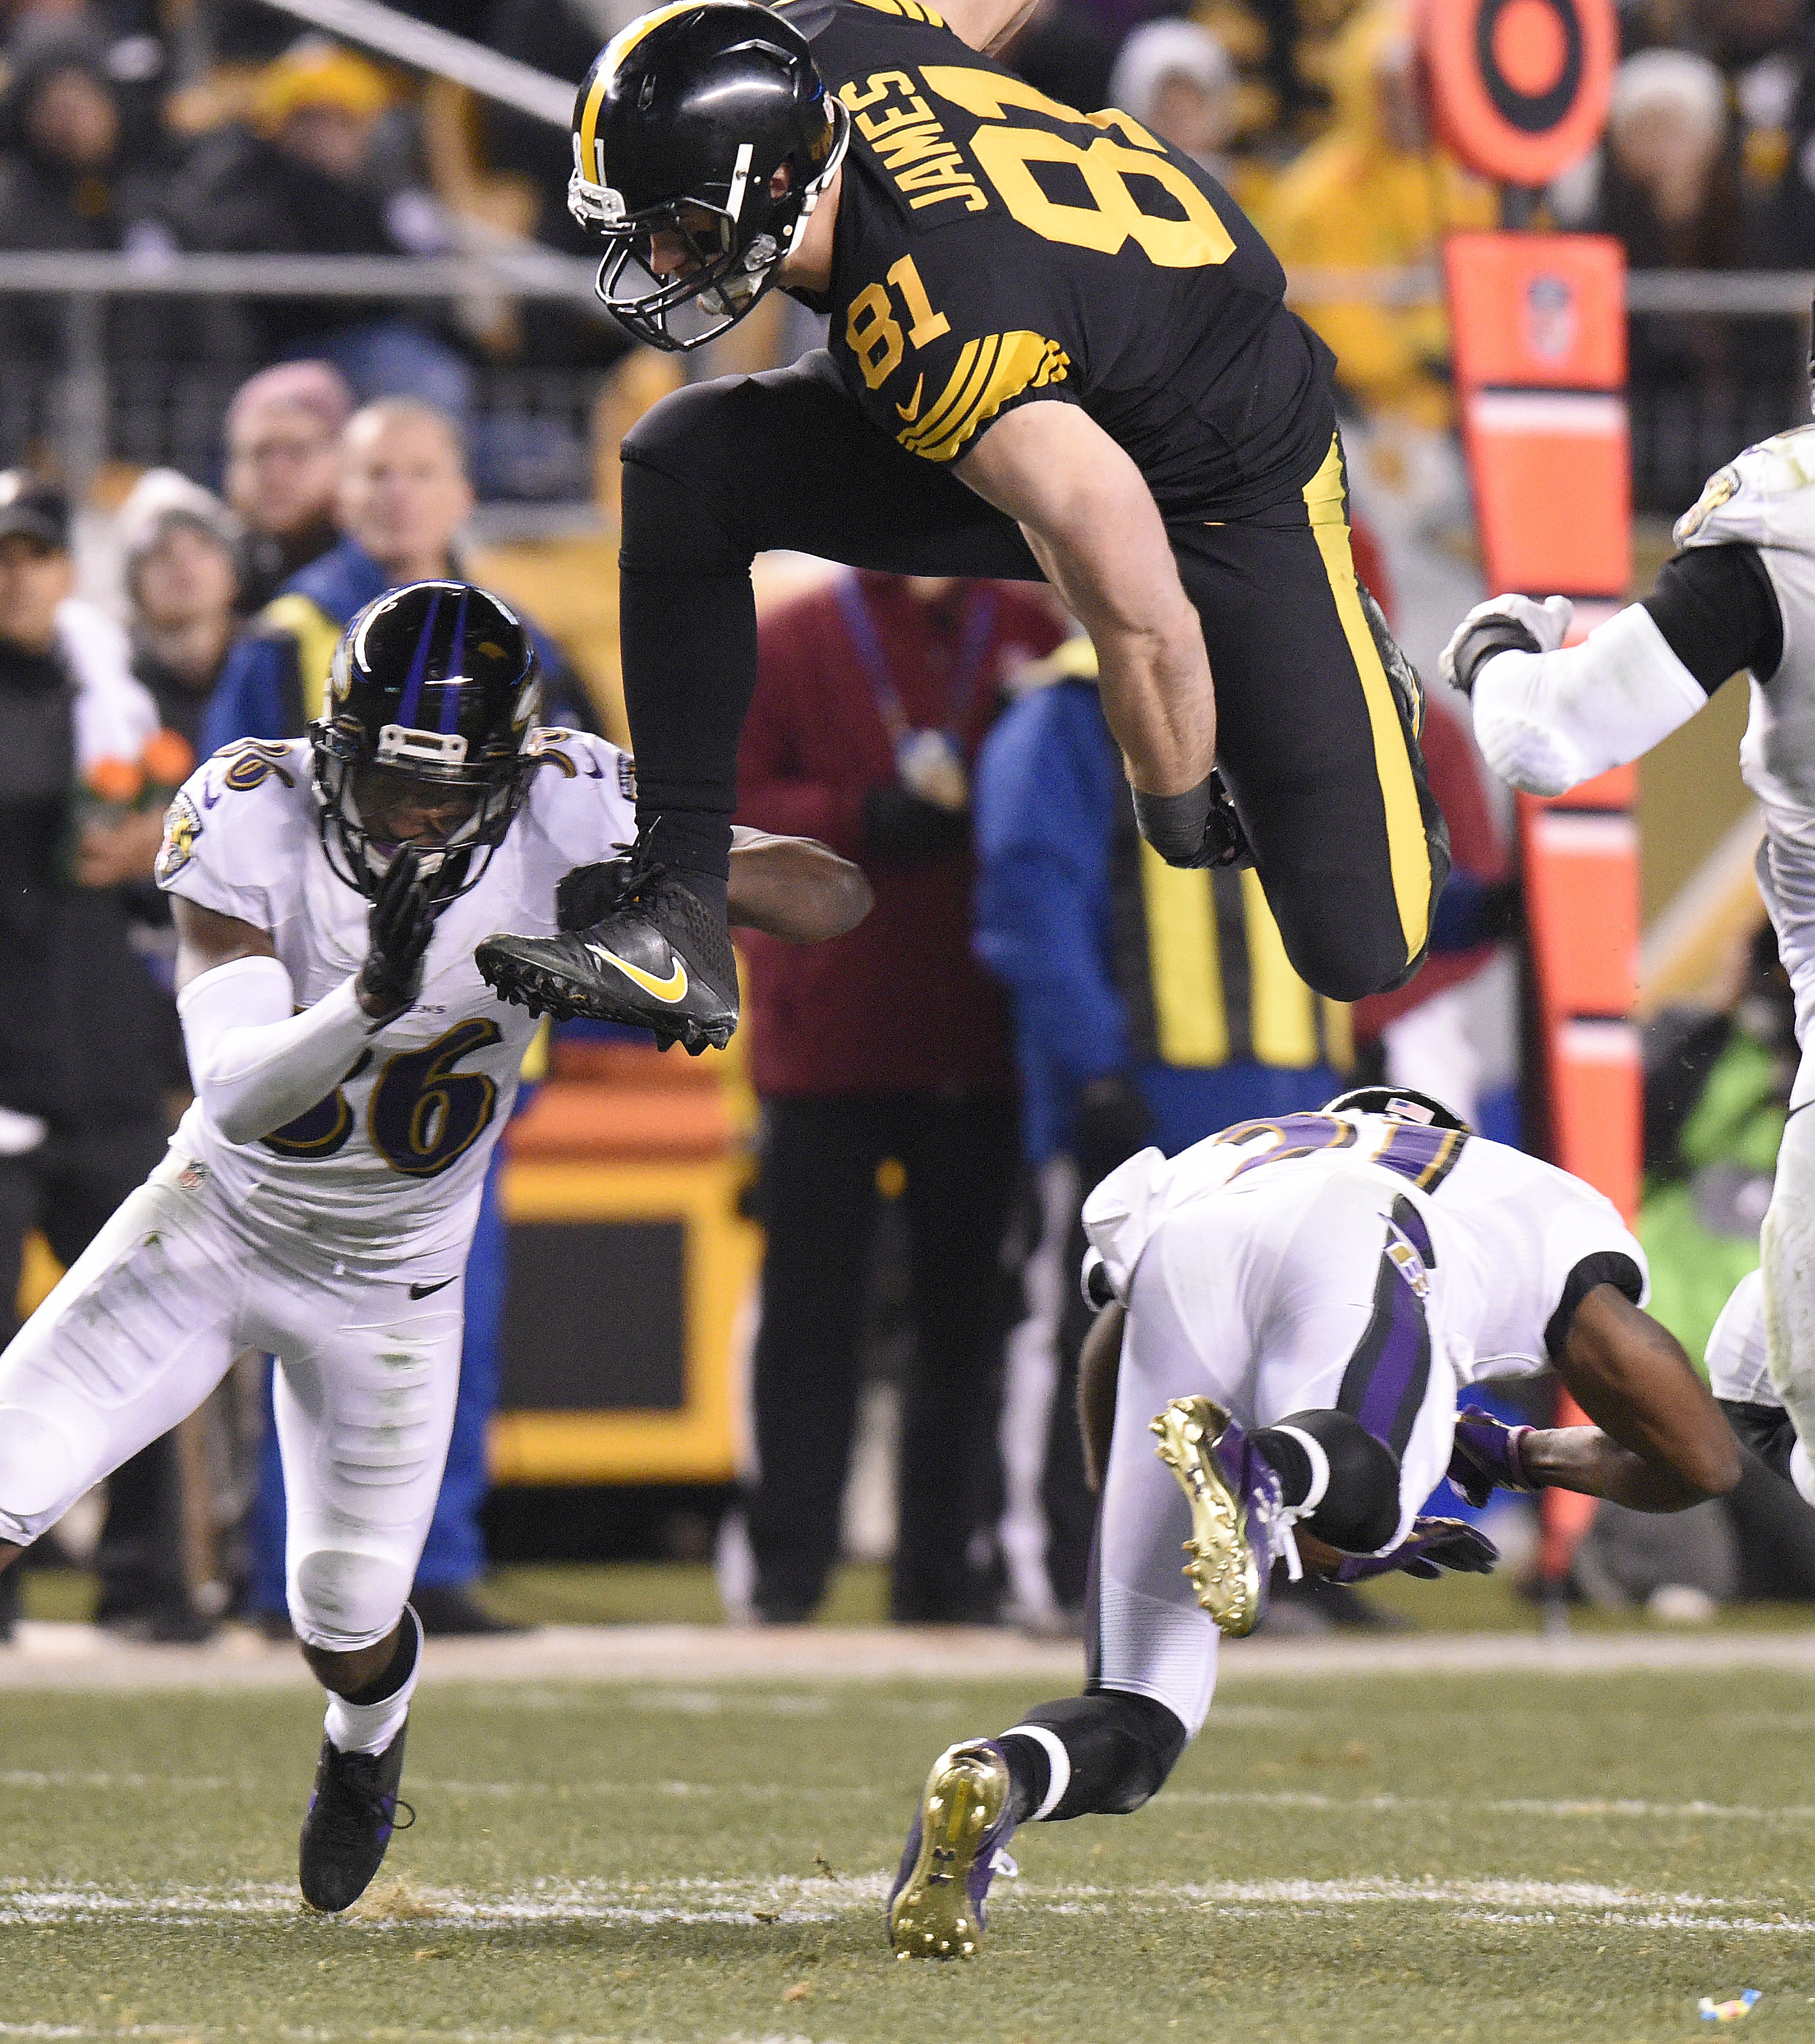 FILE - In this Sunday, Dec. 25, 2016, file photo, Pittsburgh Steelers tight end Jesse James (81) leaps over Baltimore Ravens cornerback Chris Lewis-Harris (31) before being tackled by cornerback Tavon Young (36) during the second half of an NFL football g